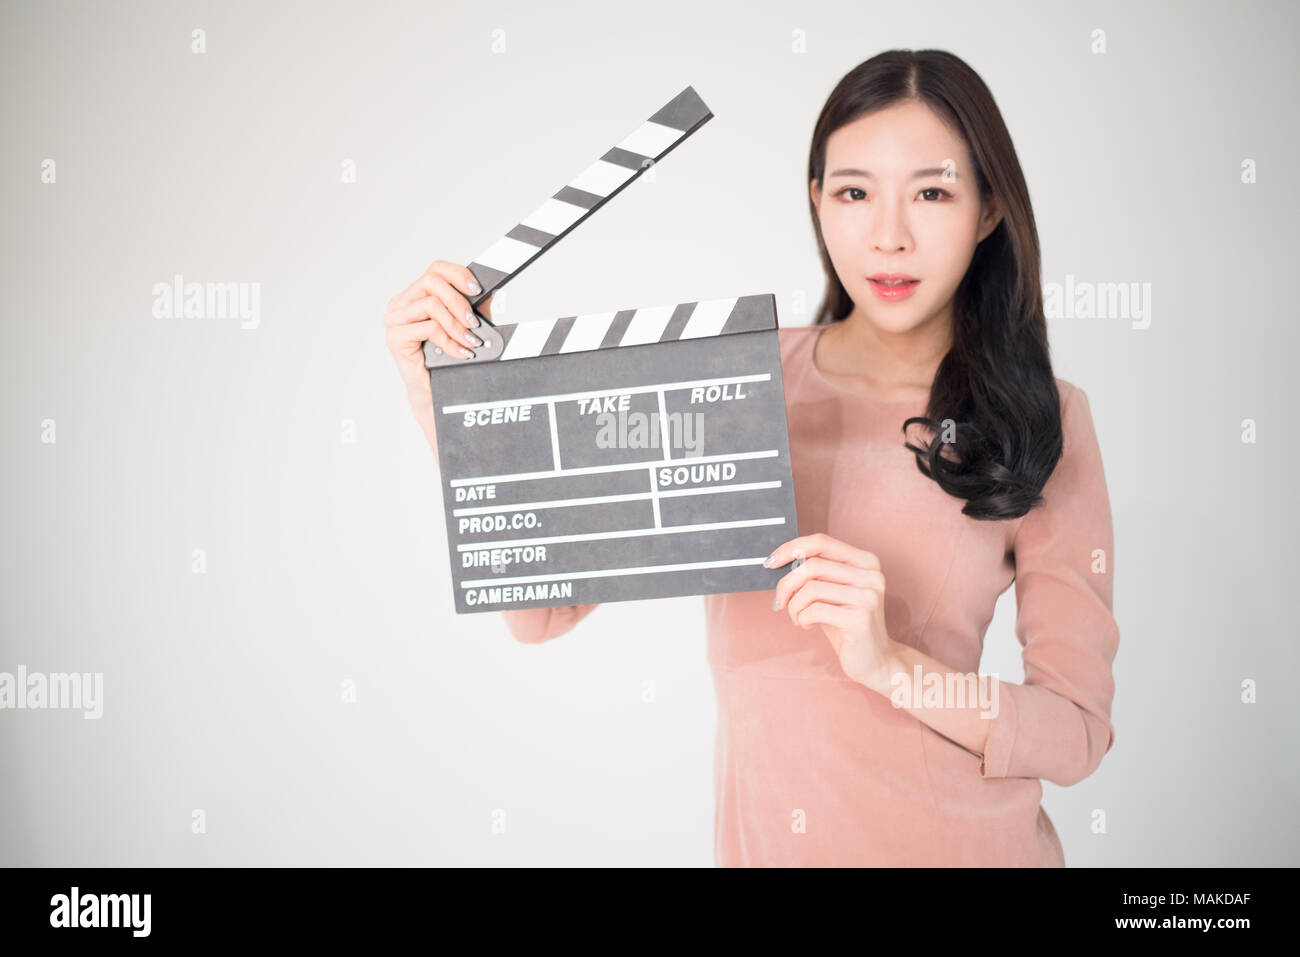 sian woman holding movie clapper board isolated on white background.  Cinematography, communication arts,